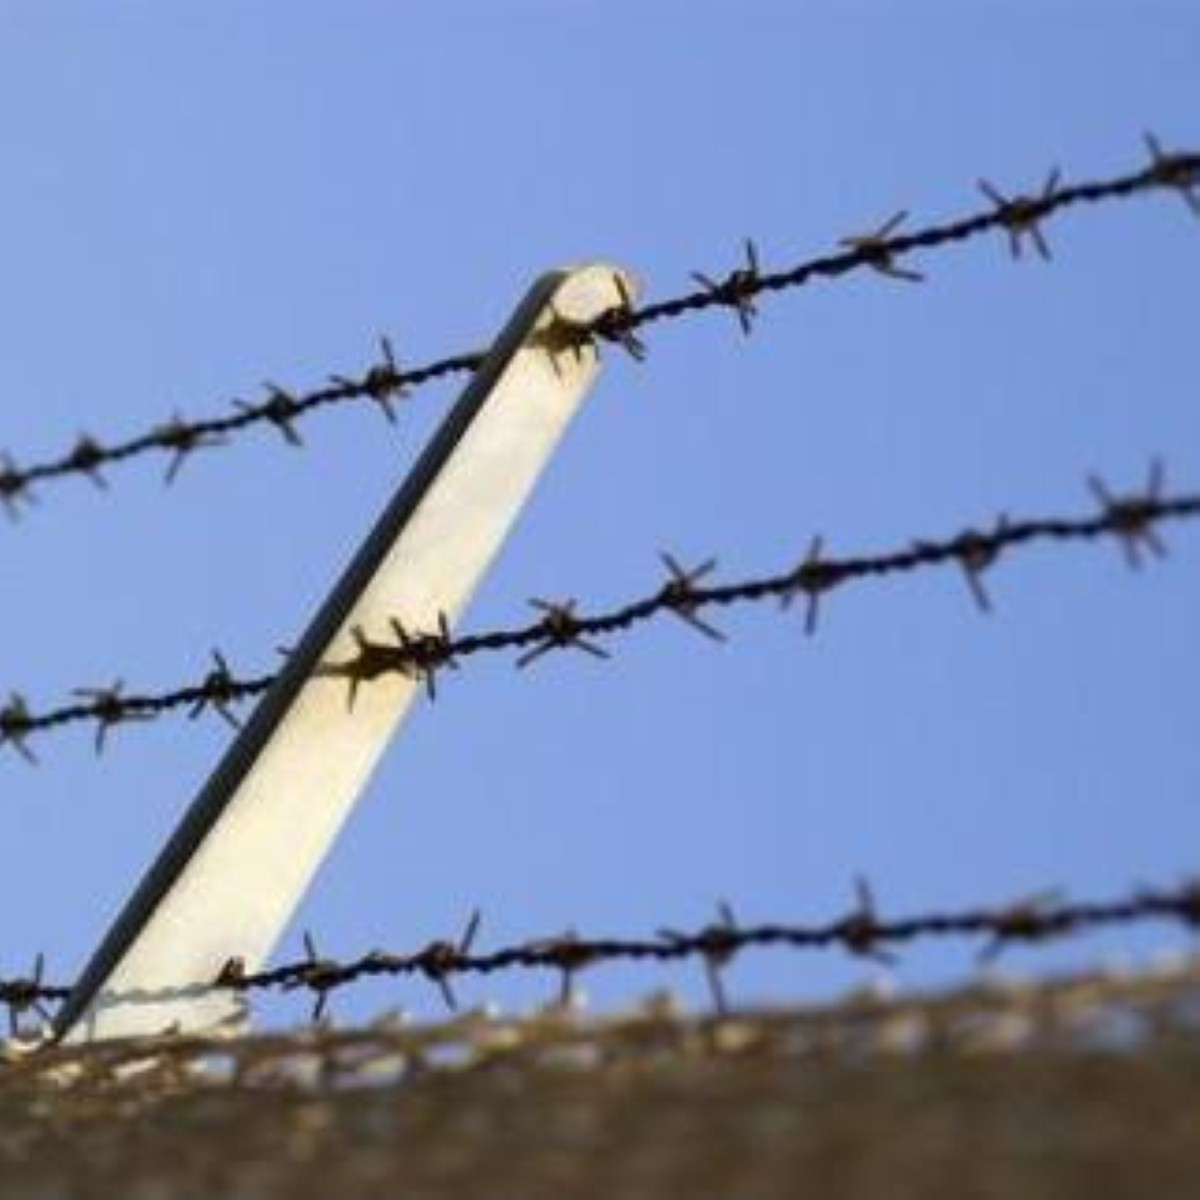 Barbed wire over a wall